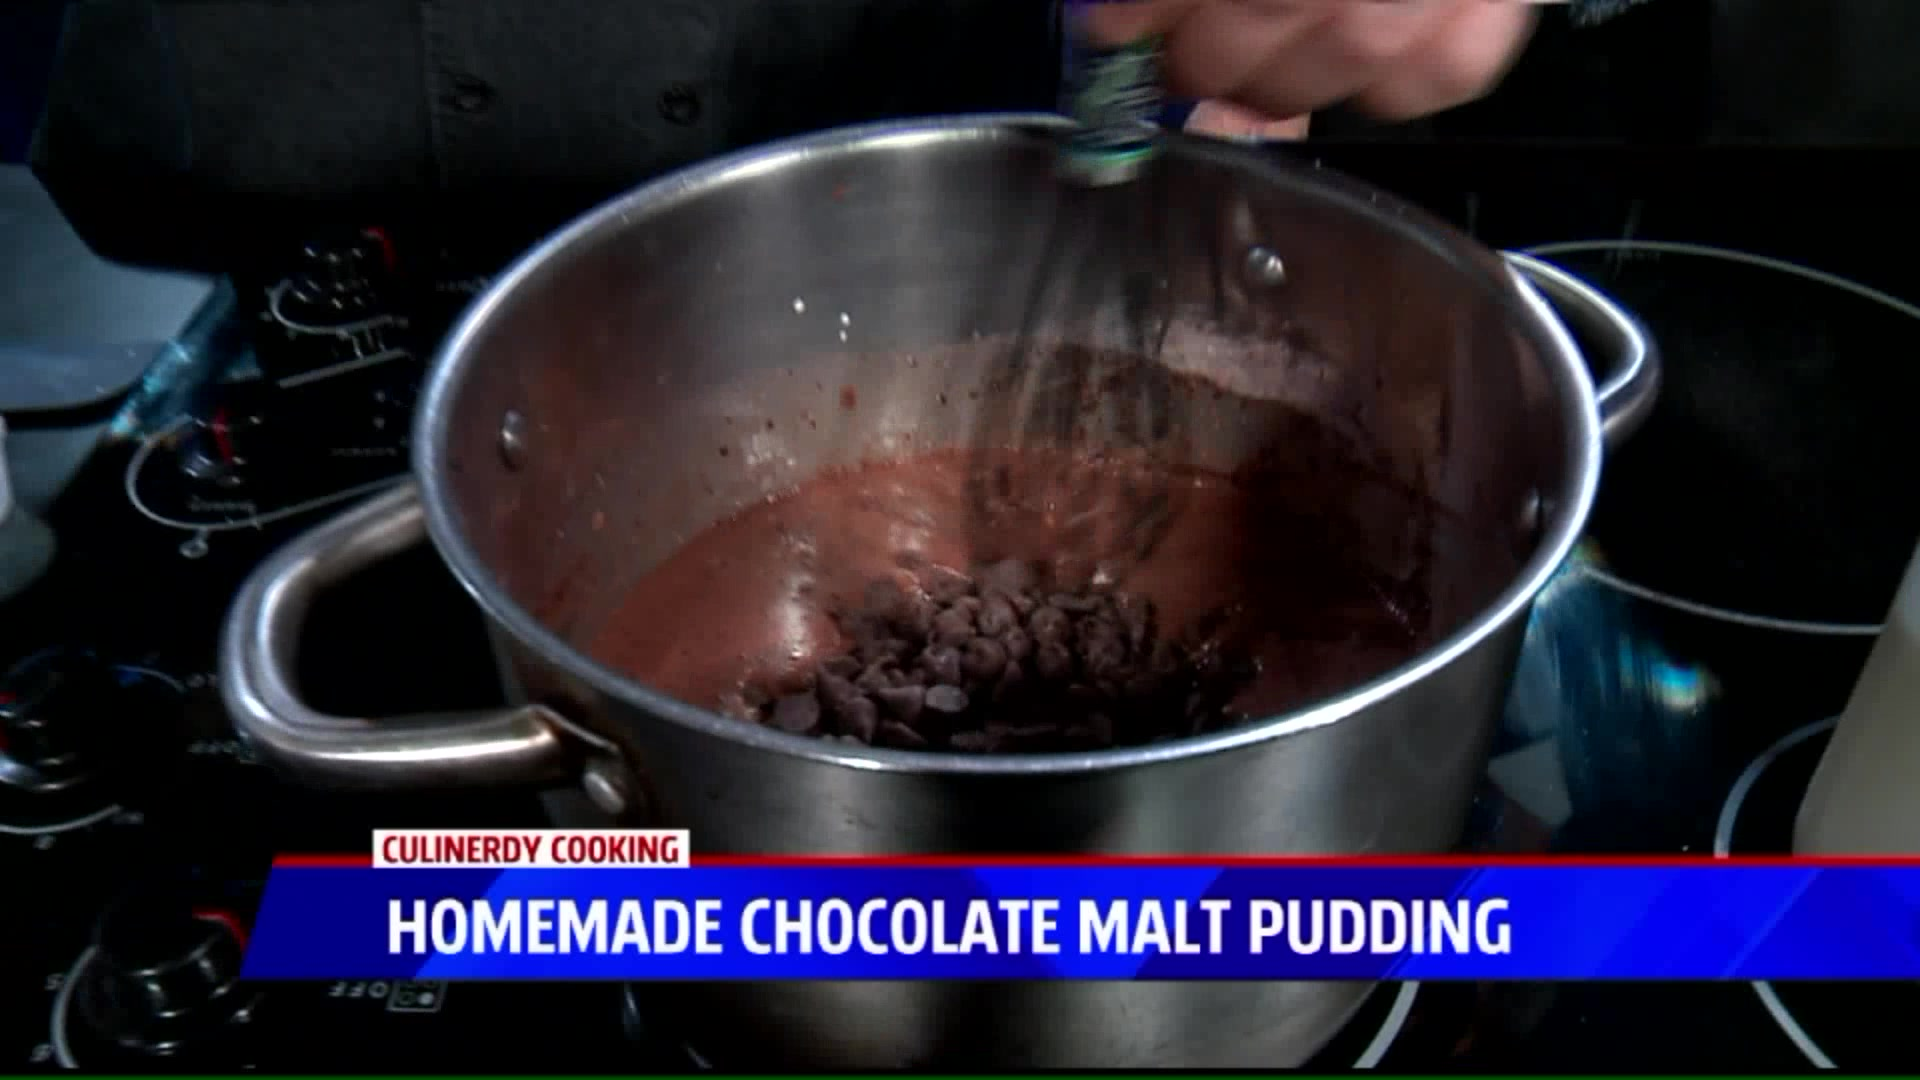 How To Make Chocolate Malt Pudding